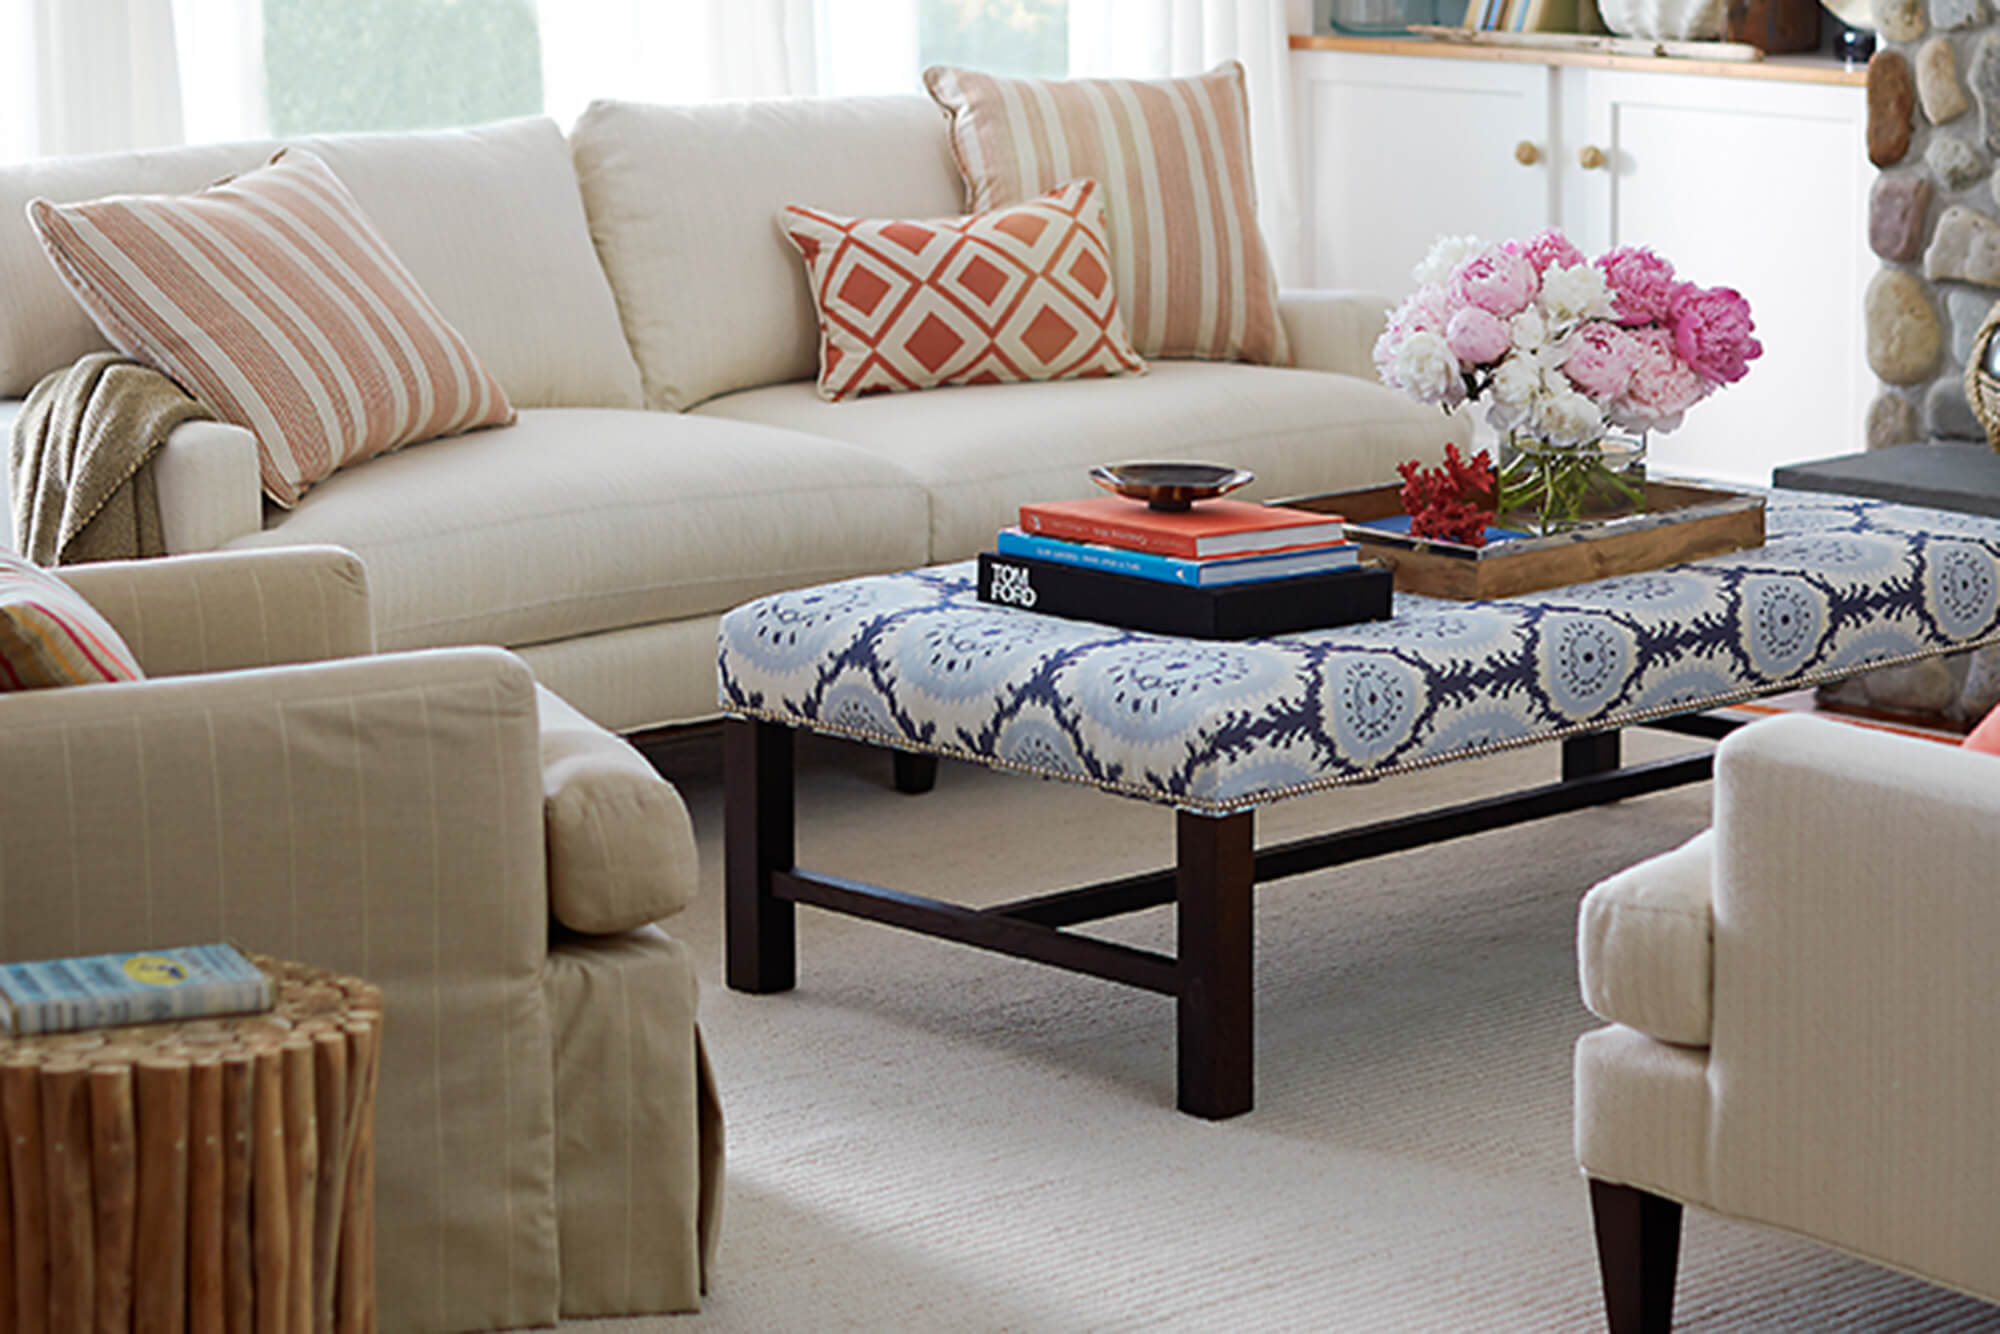 A blue jacquard patterned ottoman centers a living room and coordinates with the orange accents around the room